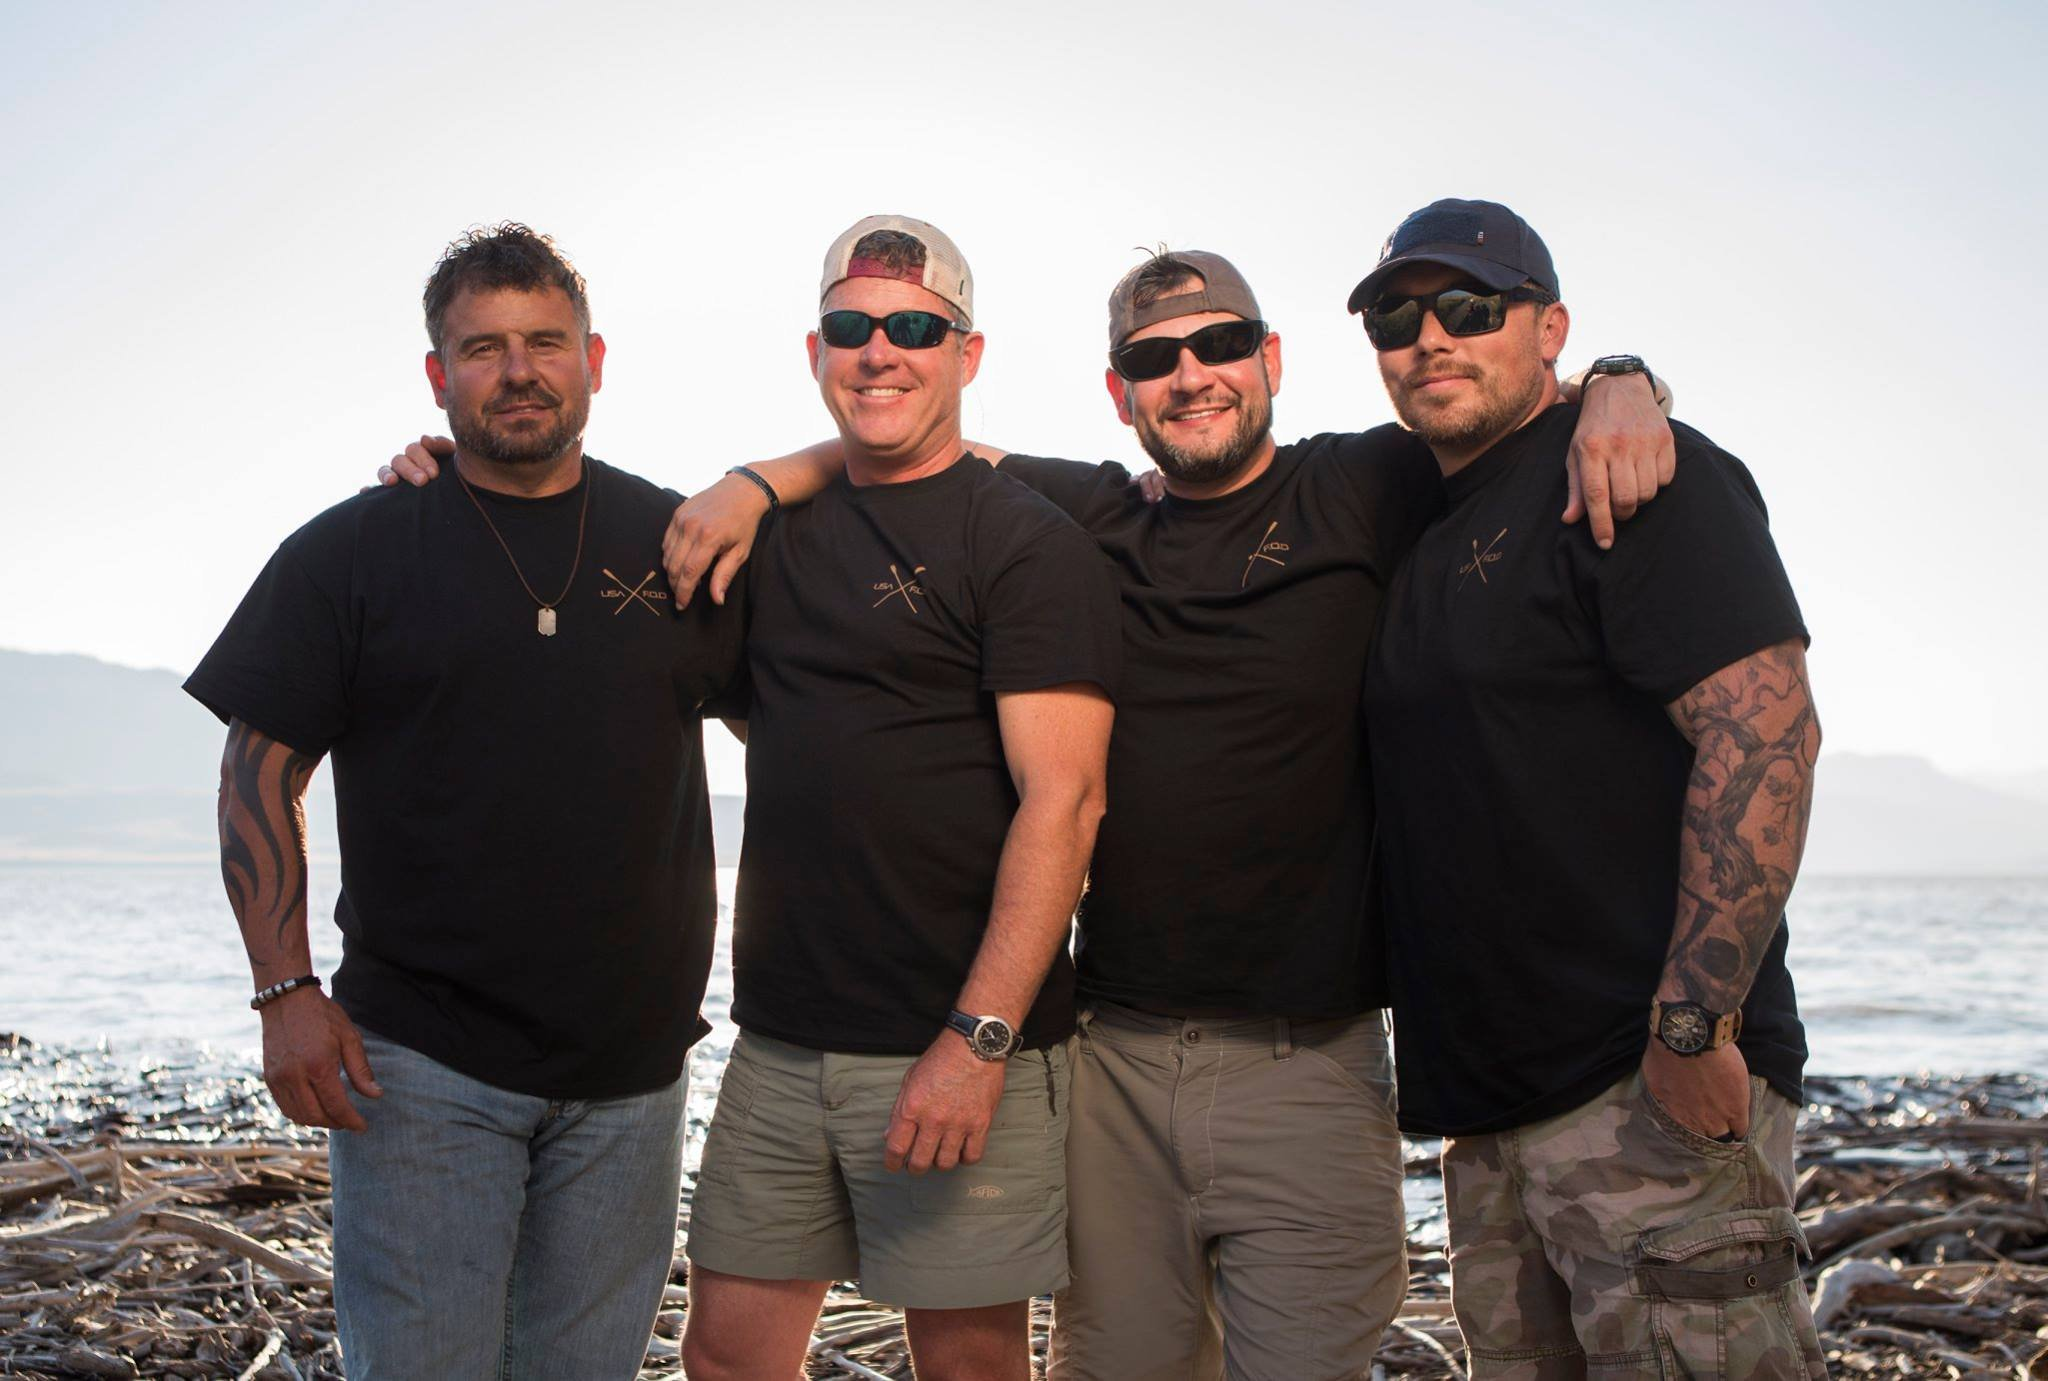 Vets set to row across the Atlantic to raise awareness & money for PTSD. Source: Fight Oar Die